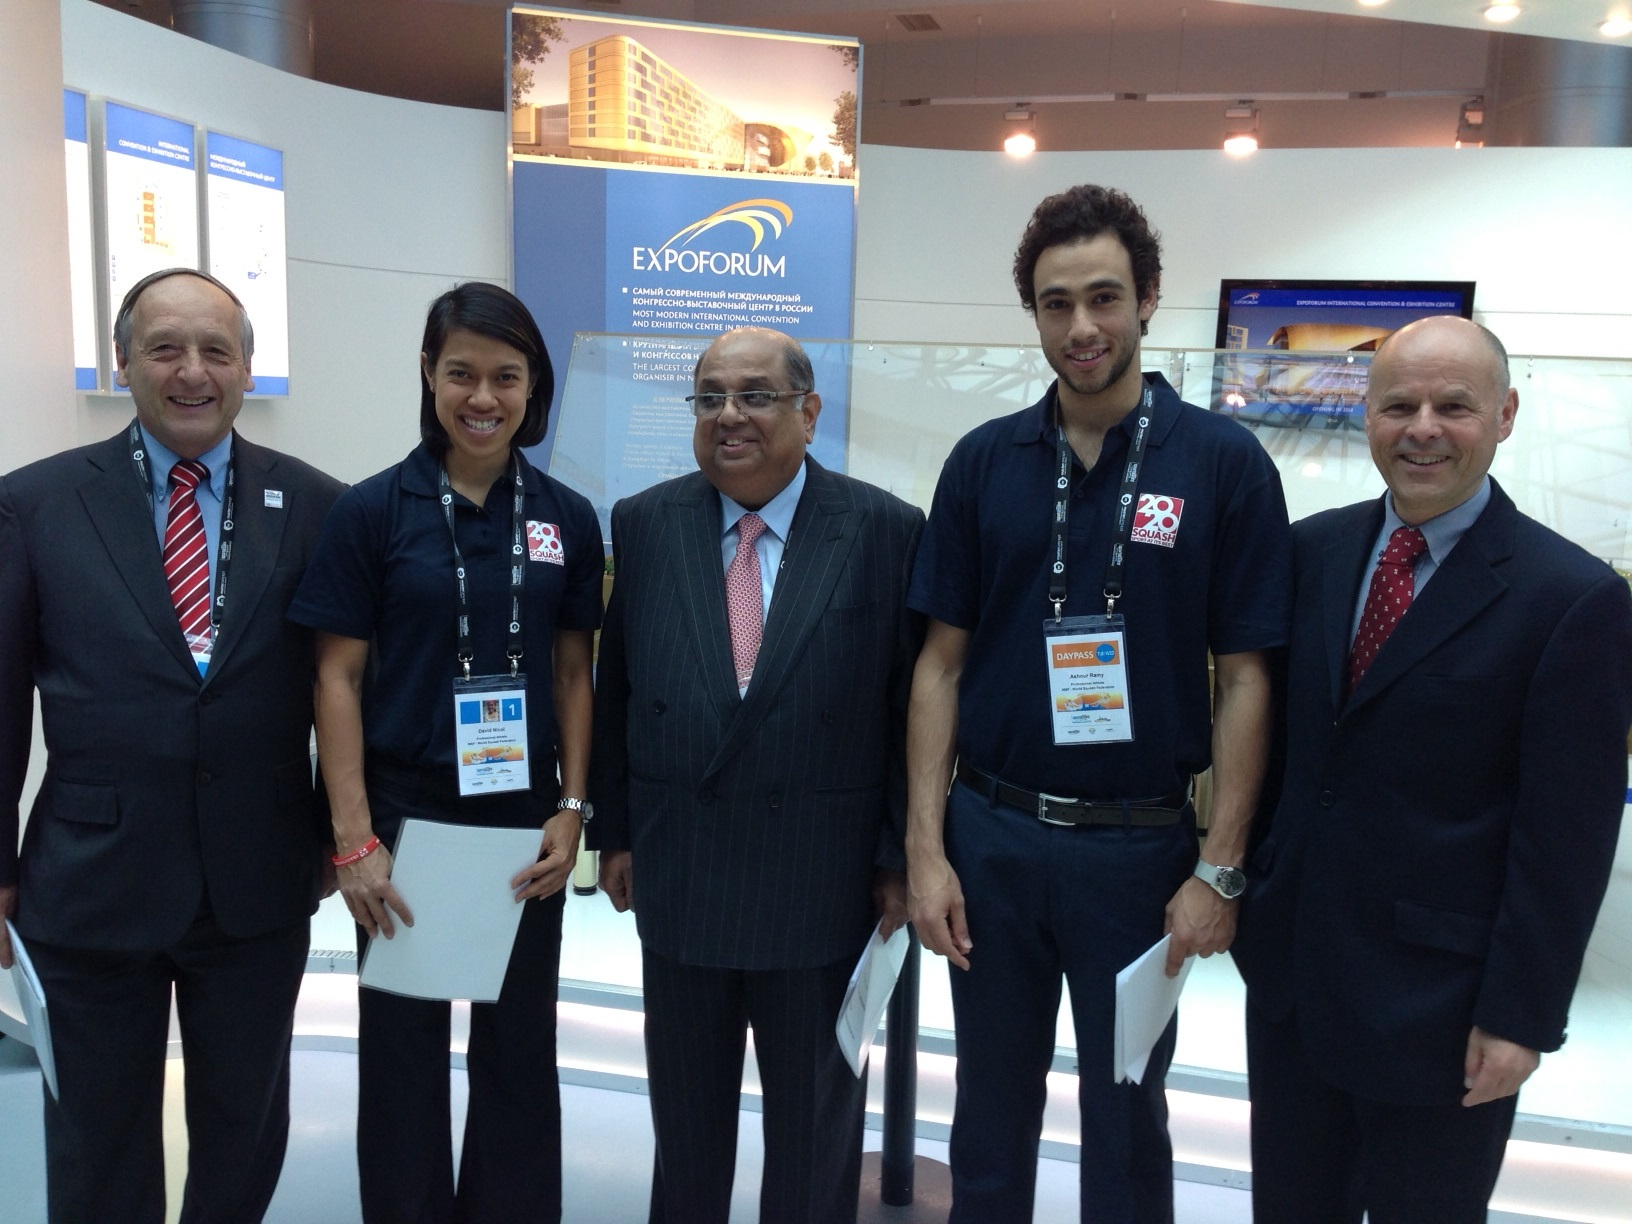 World Squash celebrate getting on shortlist for 2020 May 29 2013